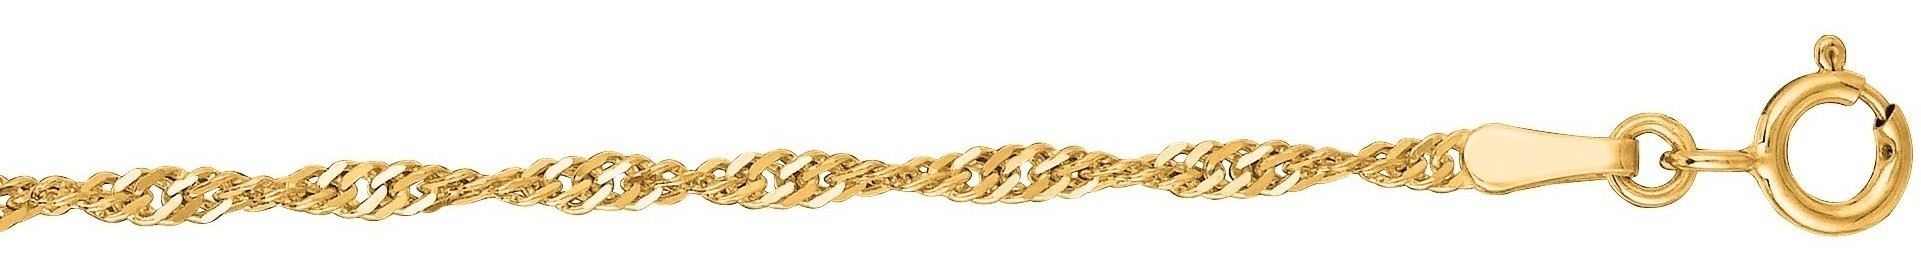 "18"" 10K Yellow Gold 1.7mm (0.07"") Polished Diamond Cut Singapore Chain w/ Spring Ring Clasp"